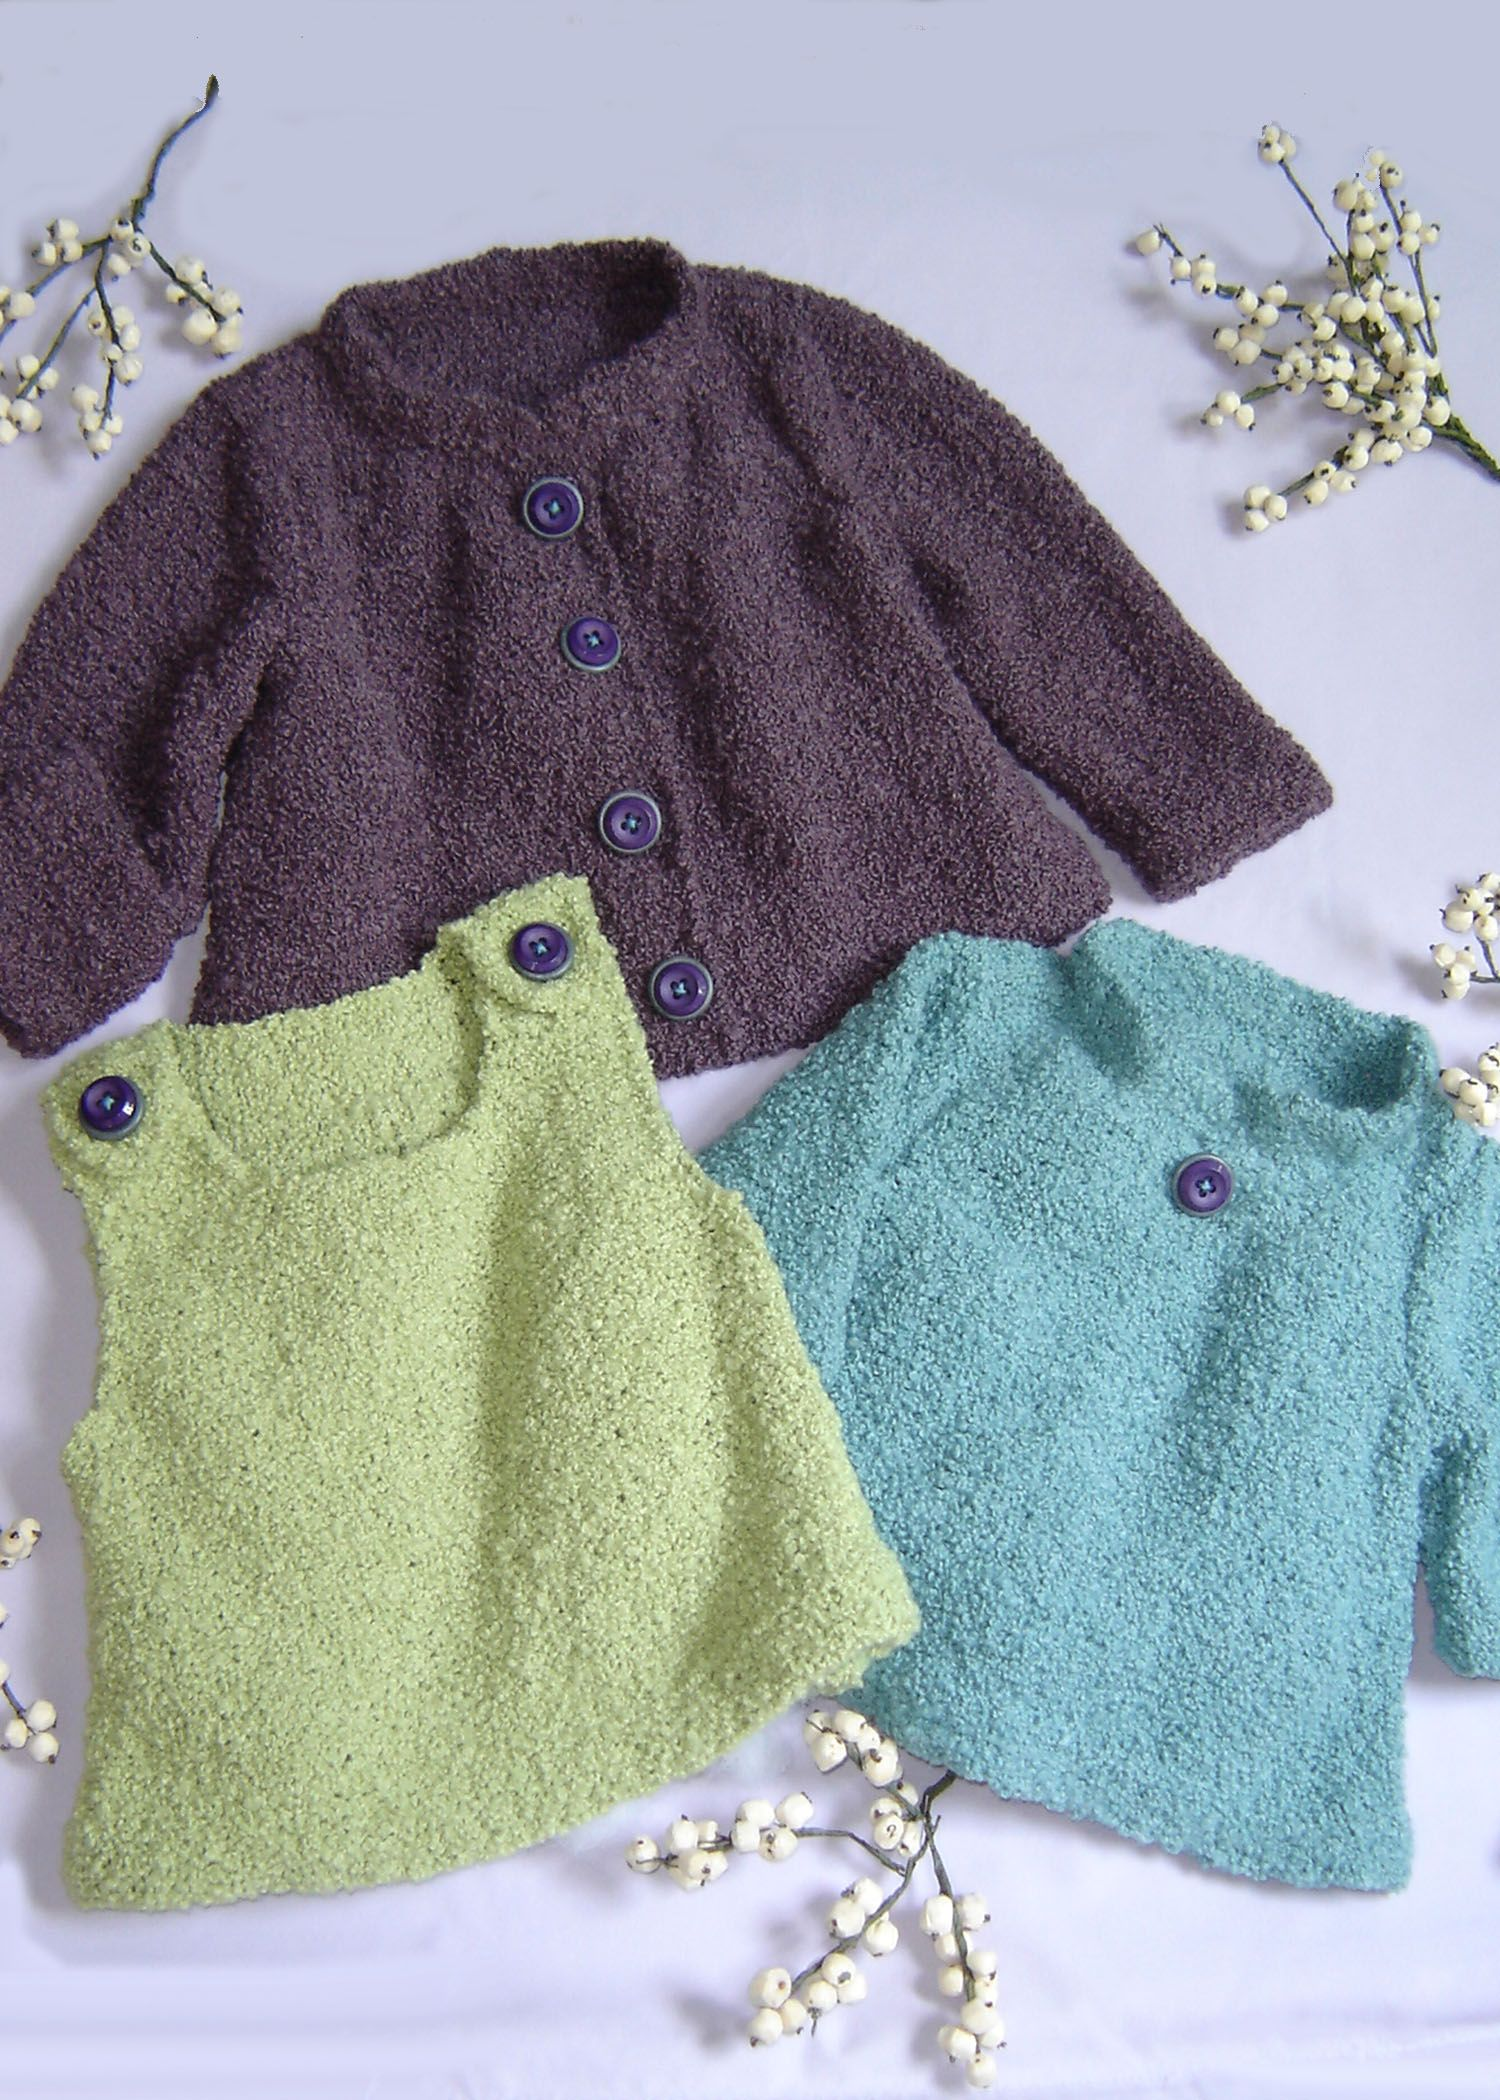 Three garment styles to knit for Baby in a cuddly boucle yarn ...